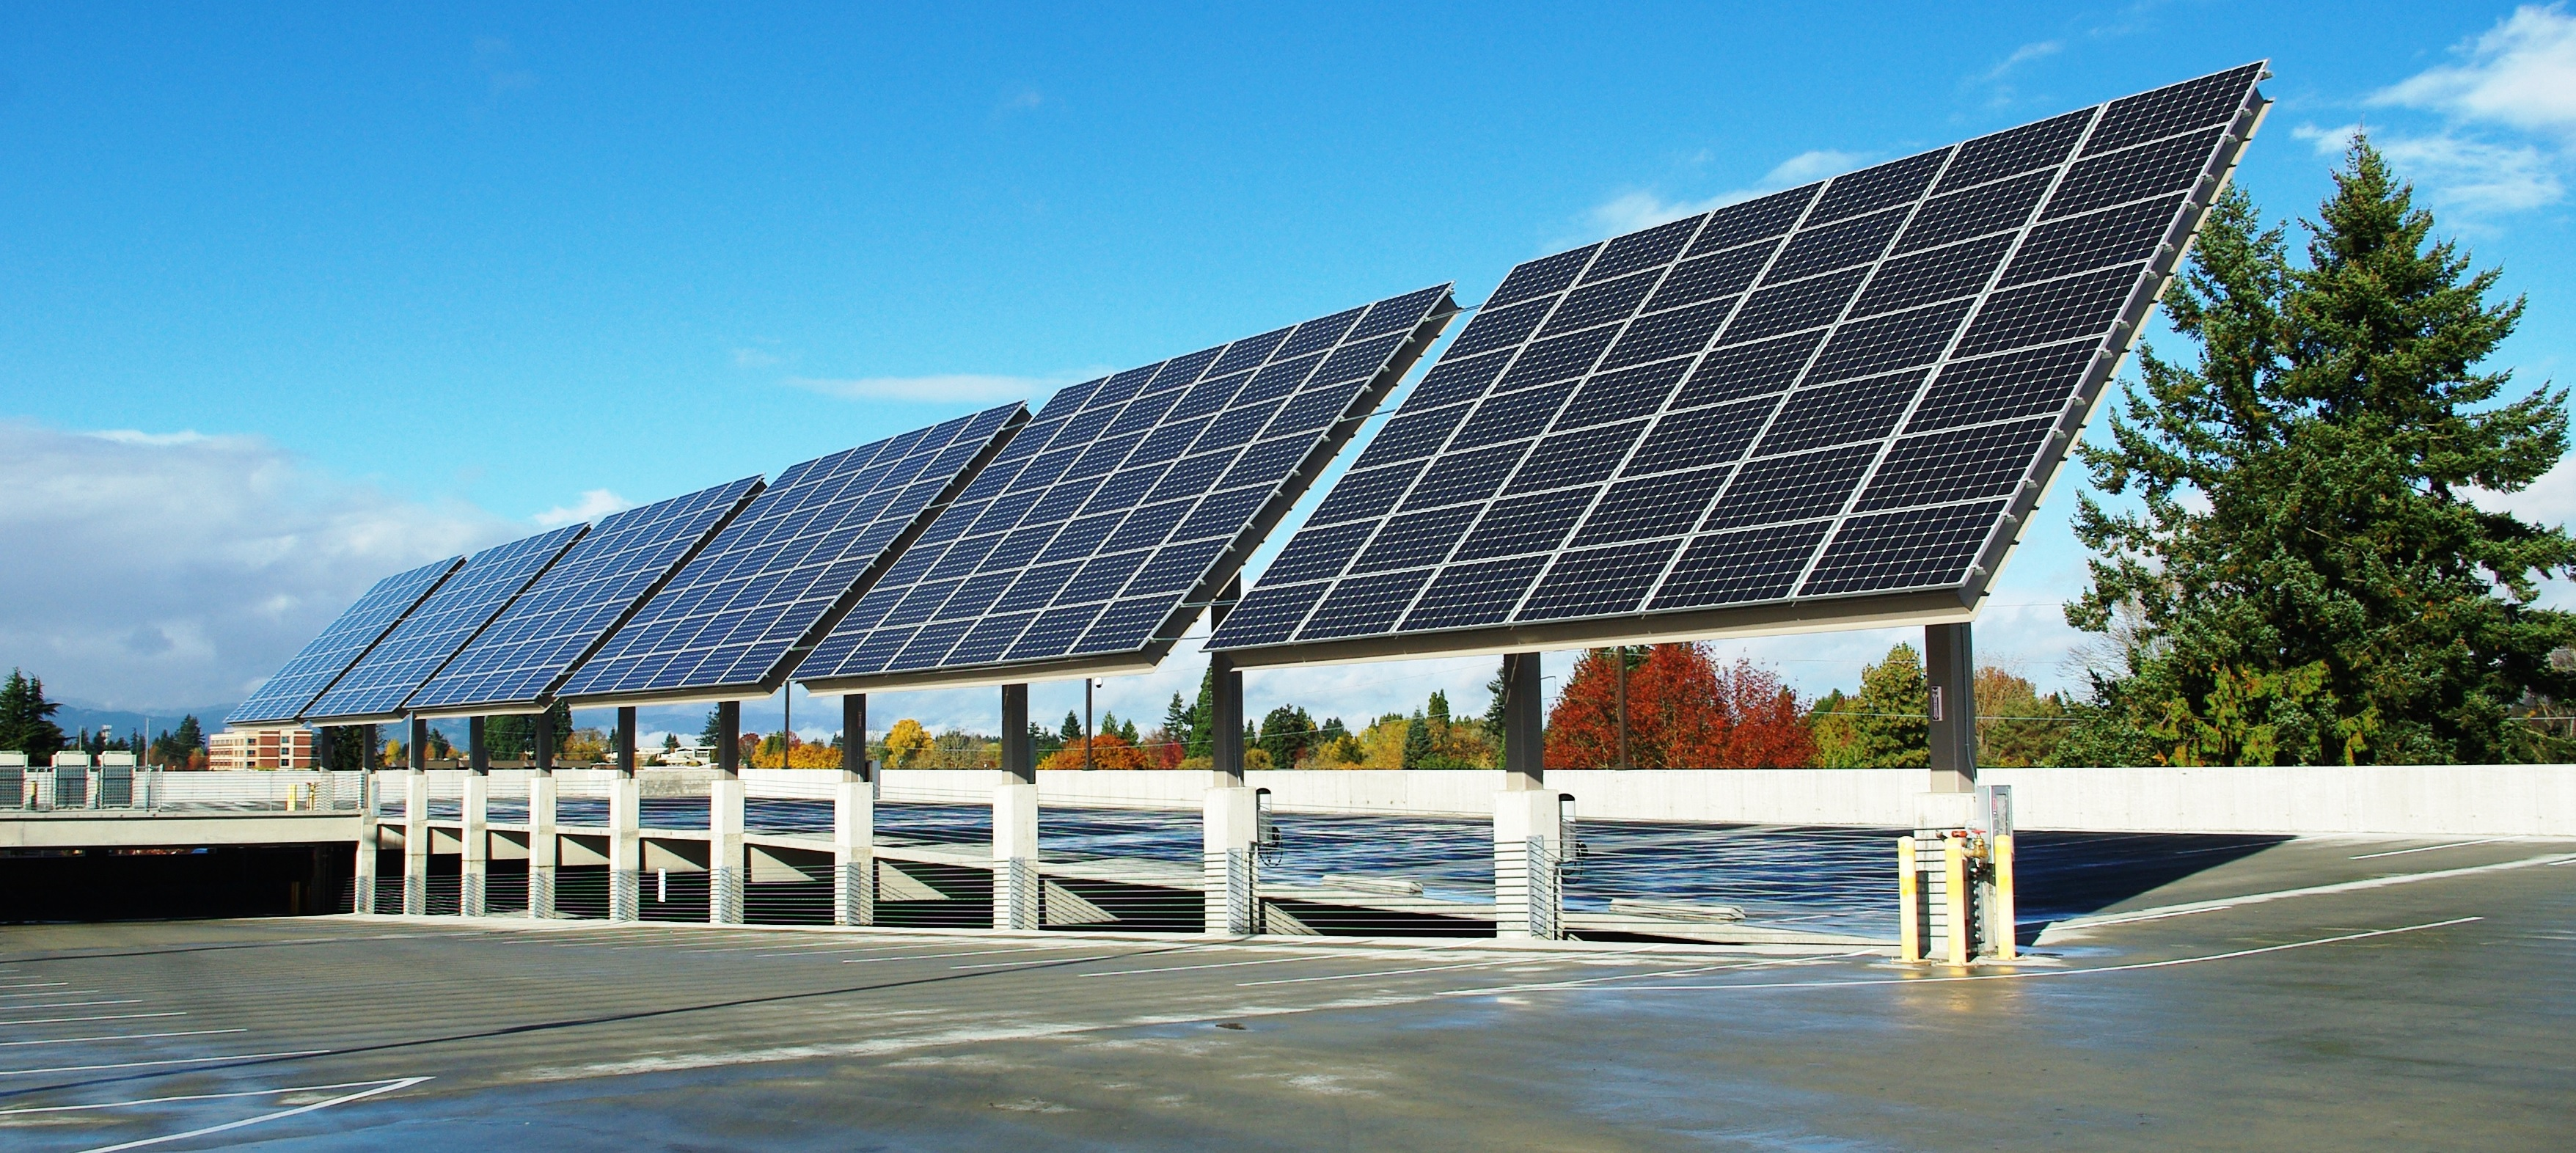 Rise In Attractiveness Of Solar Rooftops Among Major Realtors